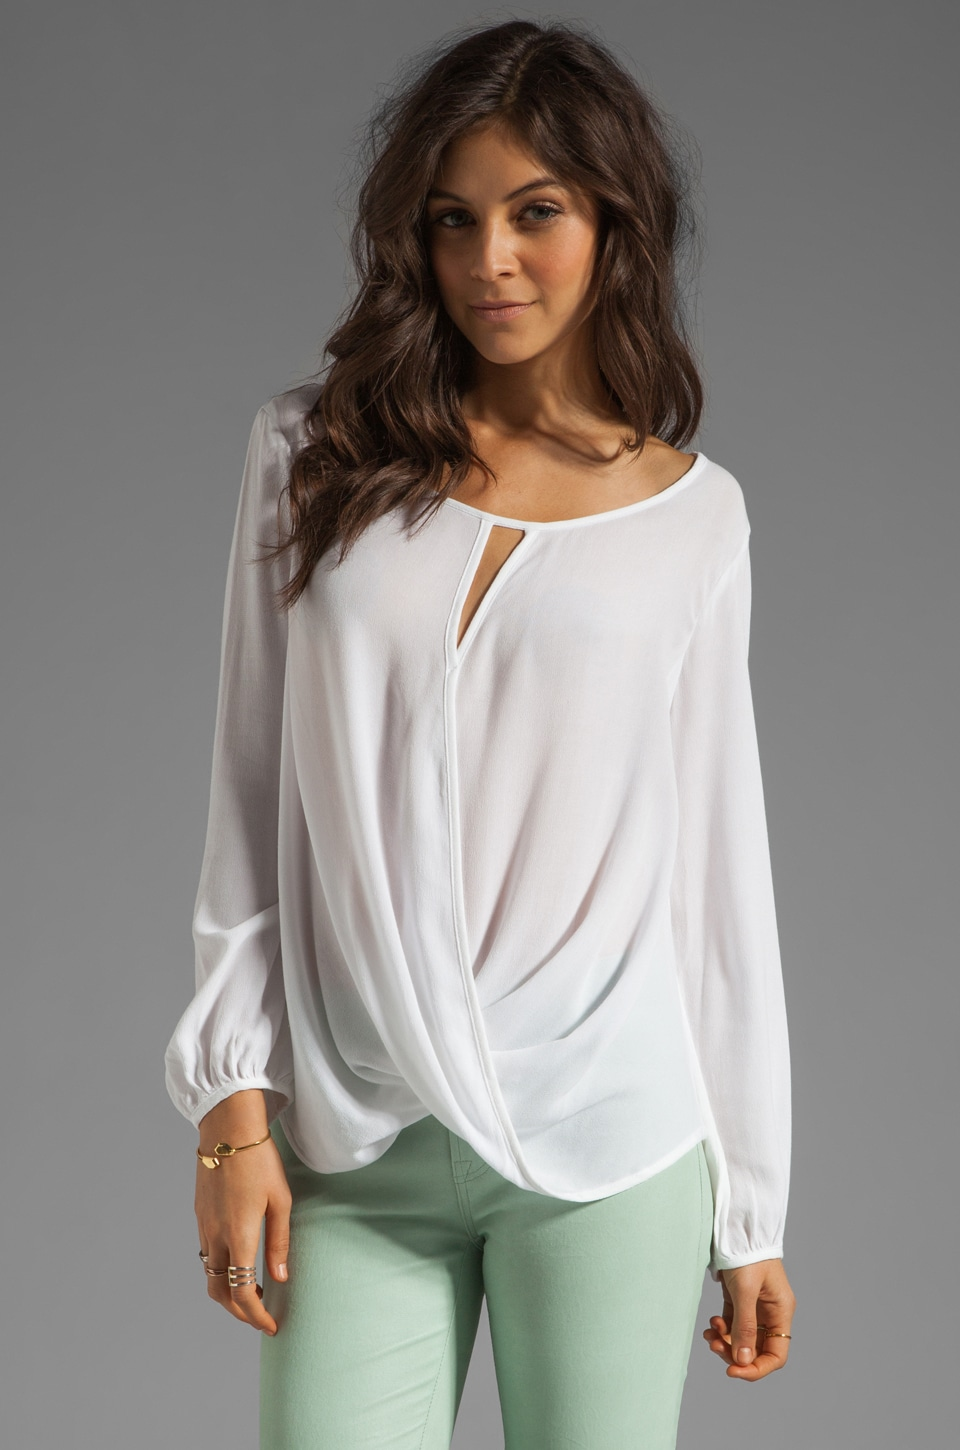 Ella Moss Stella Wrap Blouse in White